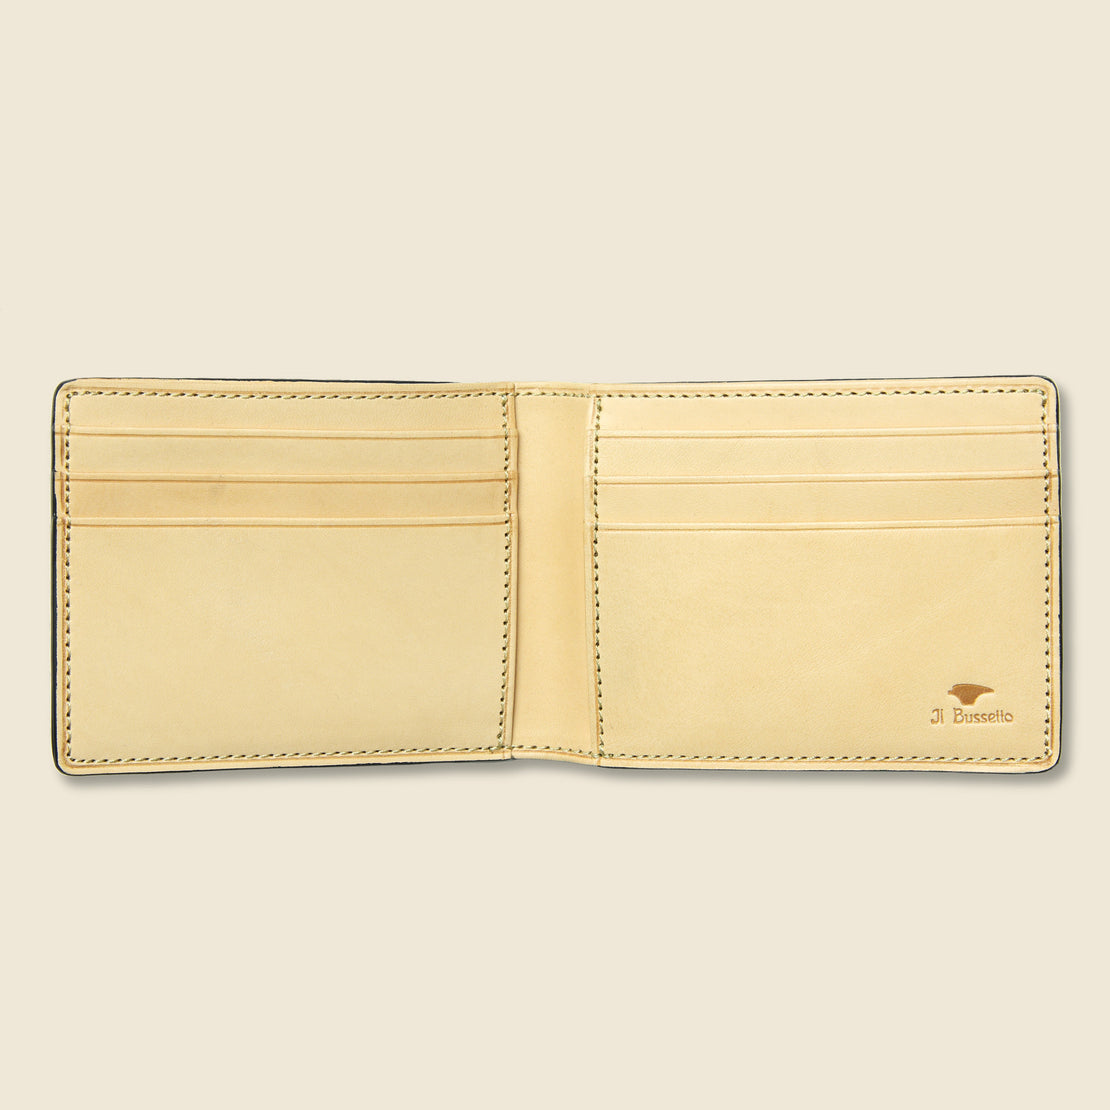 Small Bi-Fold Wallet - Navy - Il Bussetto - STAG Provisions - Accessories - Wallets